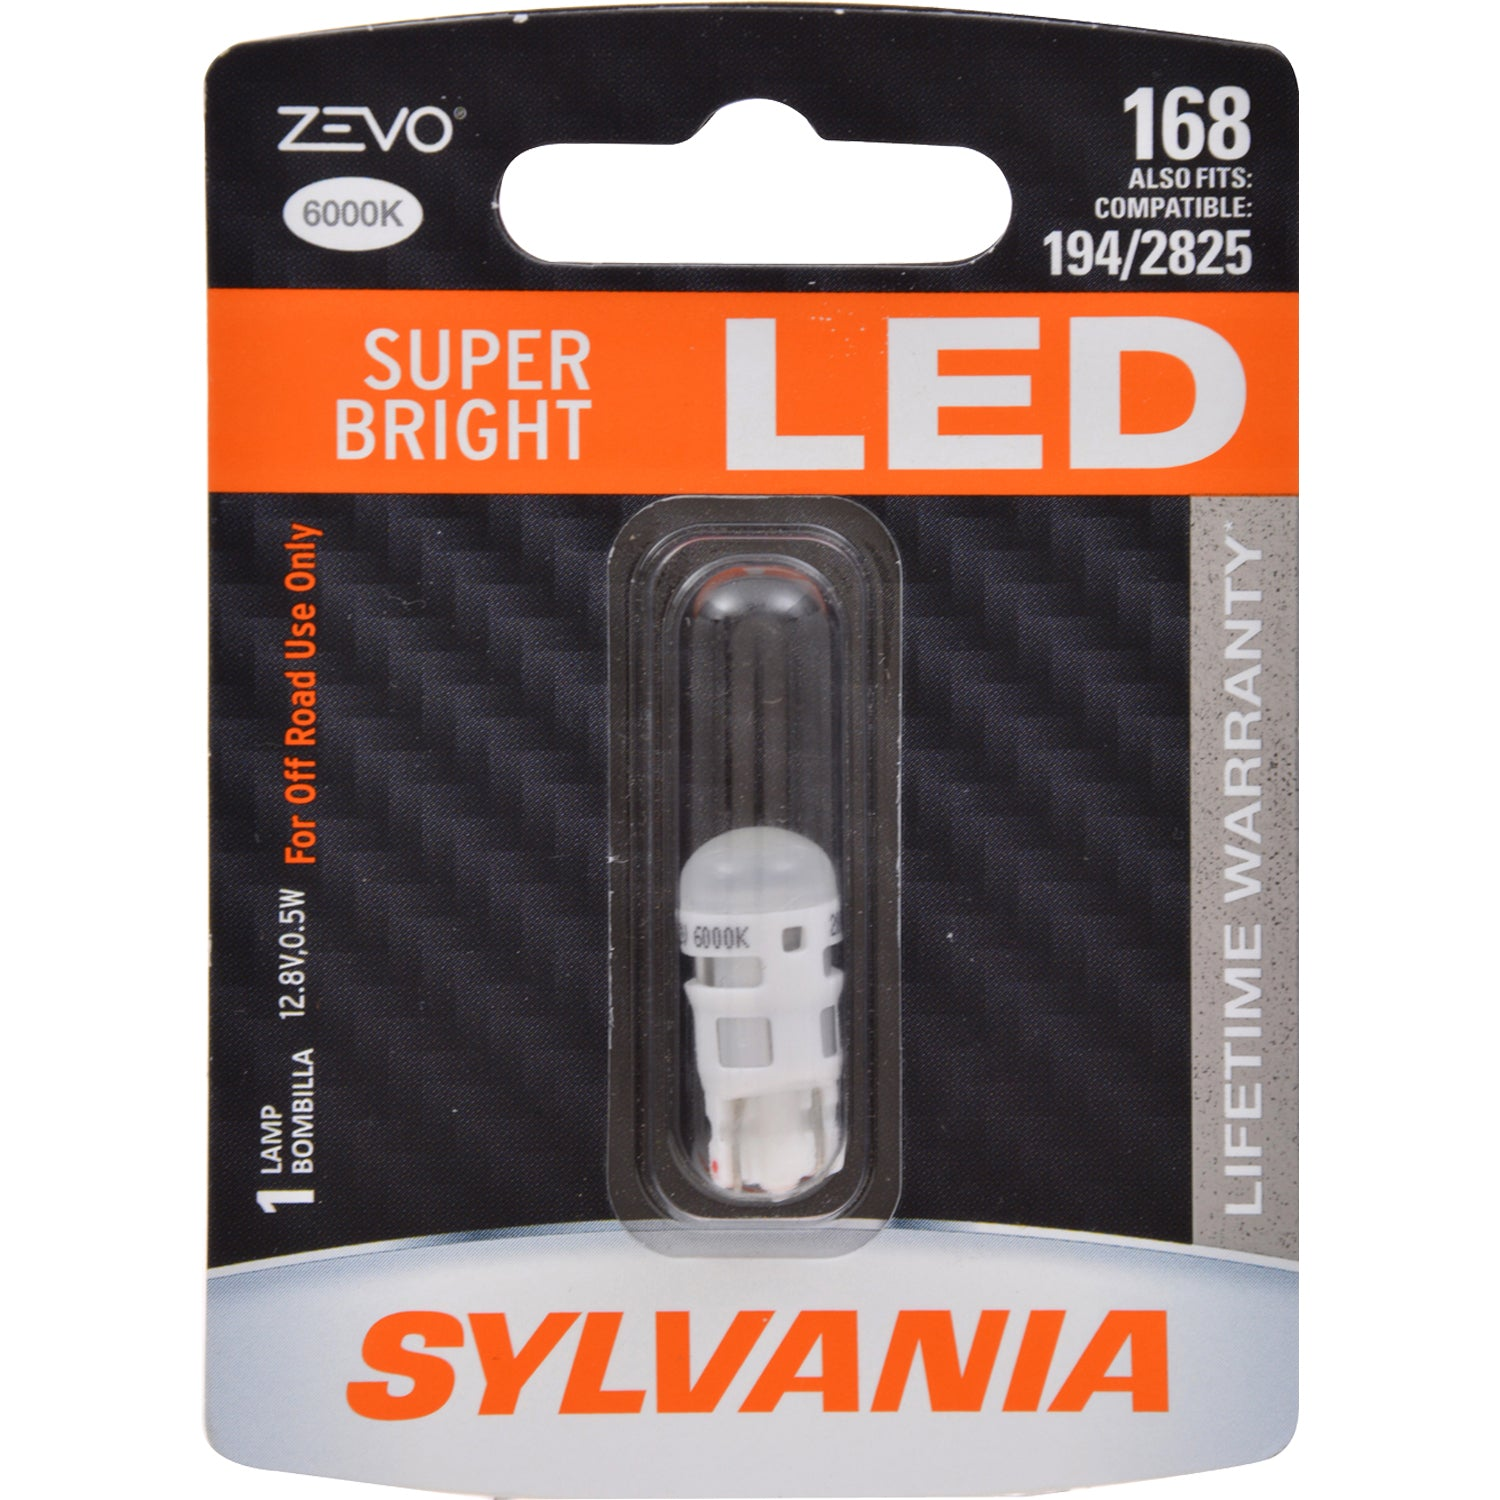 SYLVANIA ZEVO 168 T10 W5W White LED Automotive Bulb